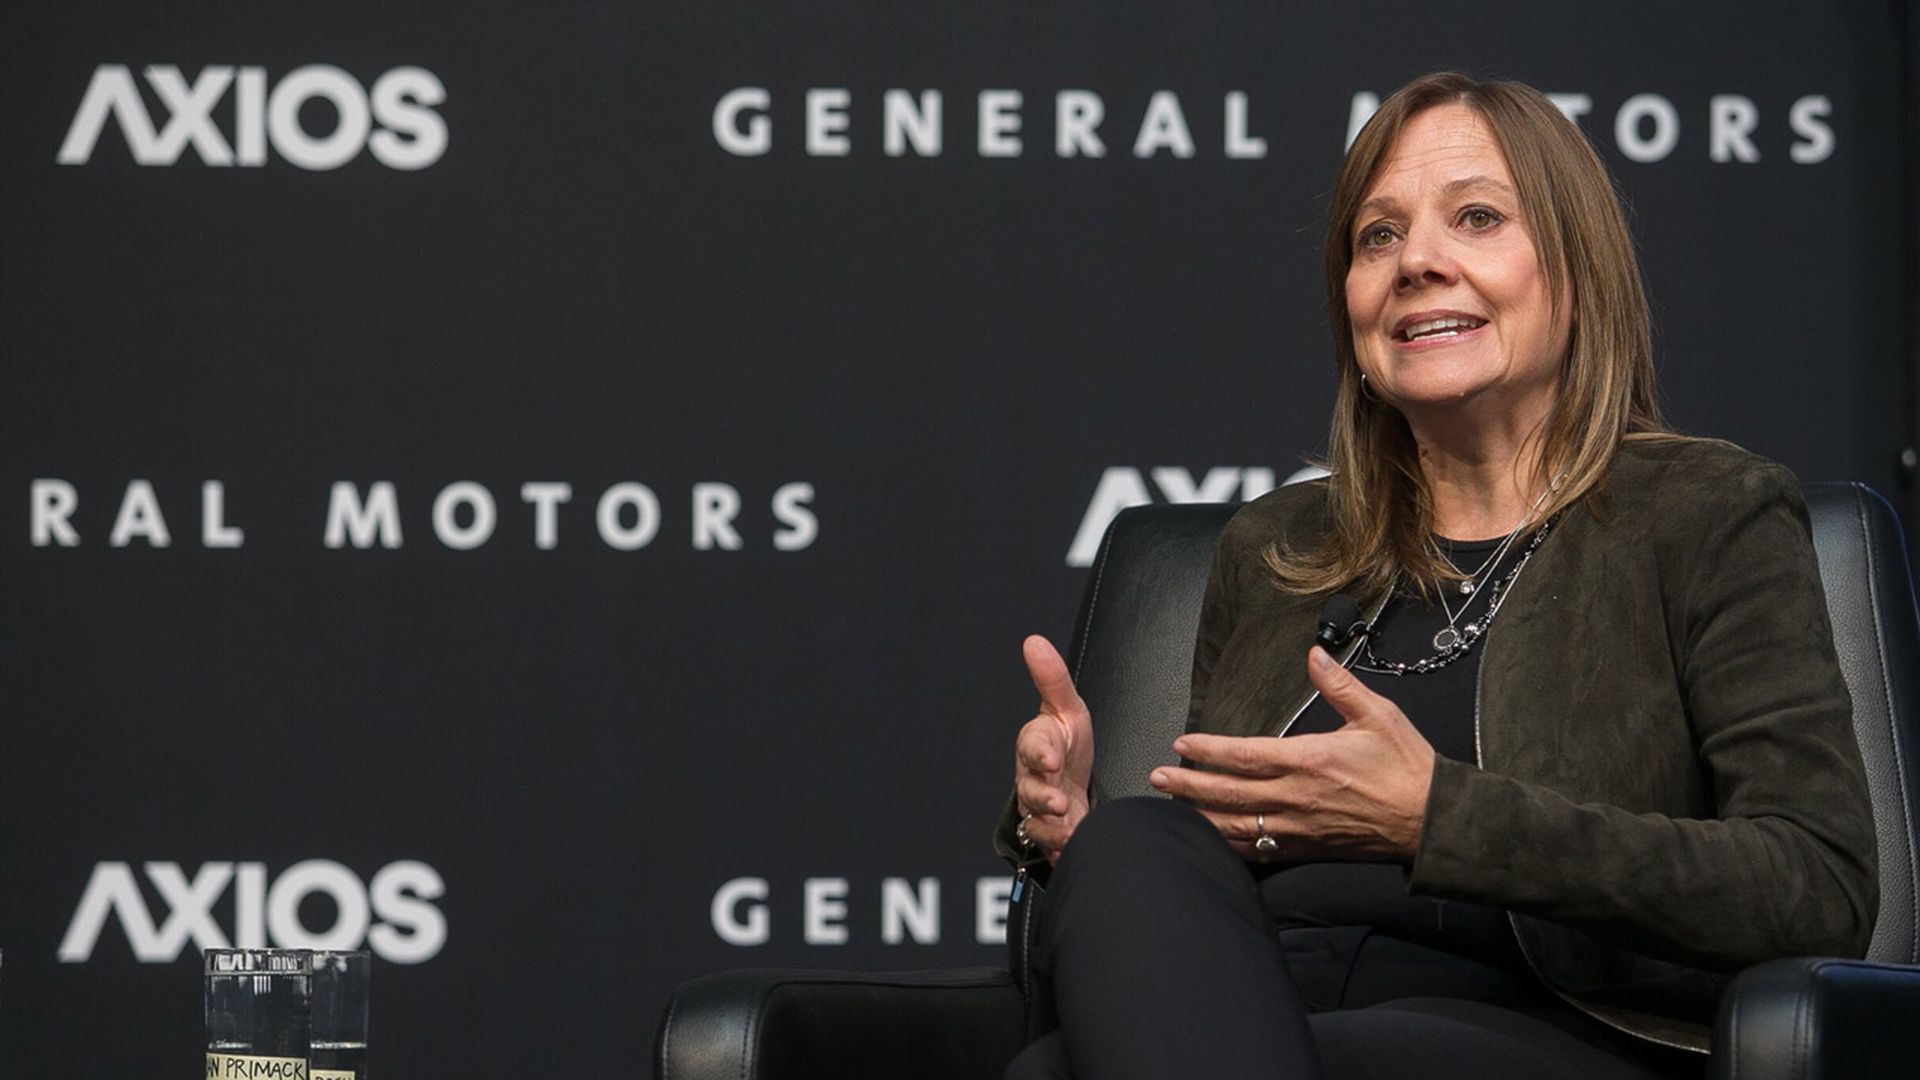 General Motors CEO Mary Barra onstage at an Axios event in Boston.